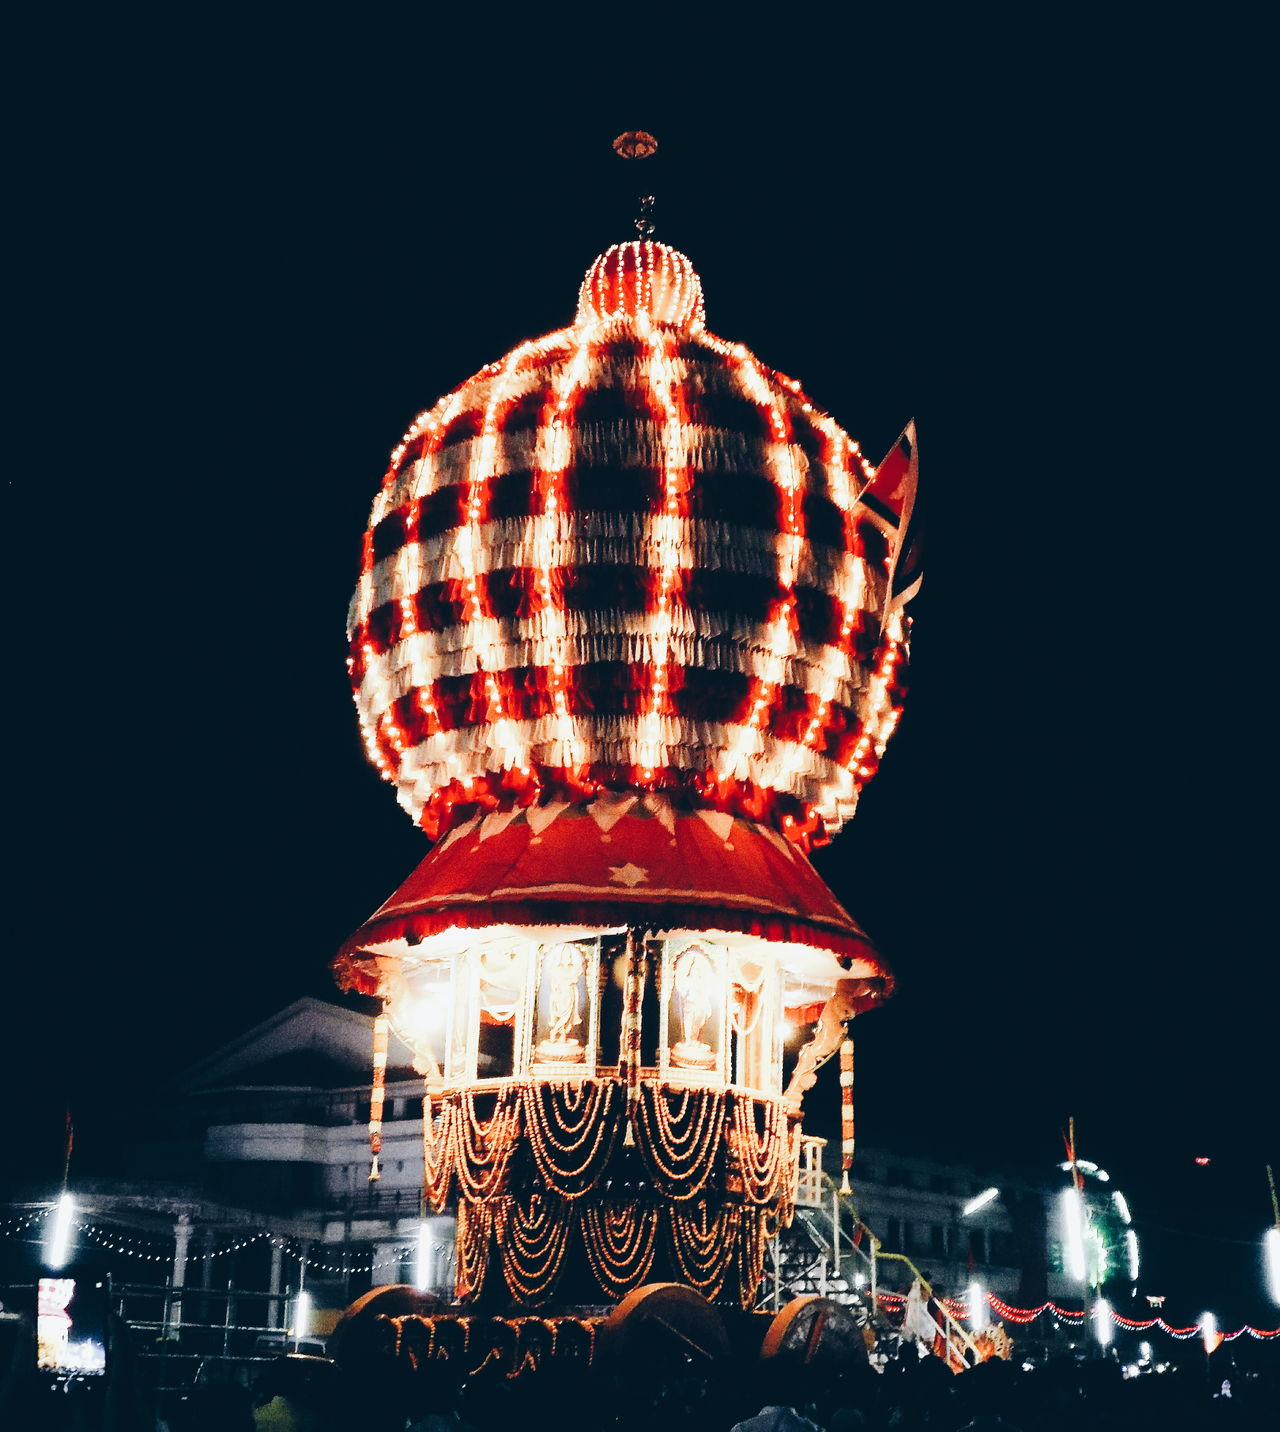 Chariot Tradition Nightphotography Eyeem India Night Lights Night Photography Temple Hinduism Incredible India EyeEmBestPics EyeEm Best Shots EyeEm Gallery Eyeemphotography Pic Of The Day Vscocam VSCO Puttur Learn & Shoot: After Dark